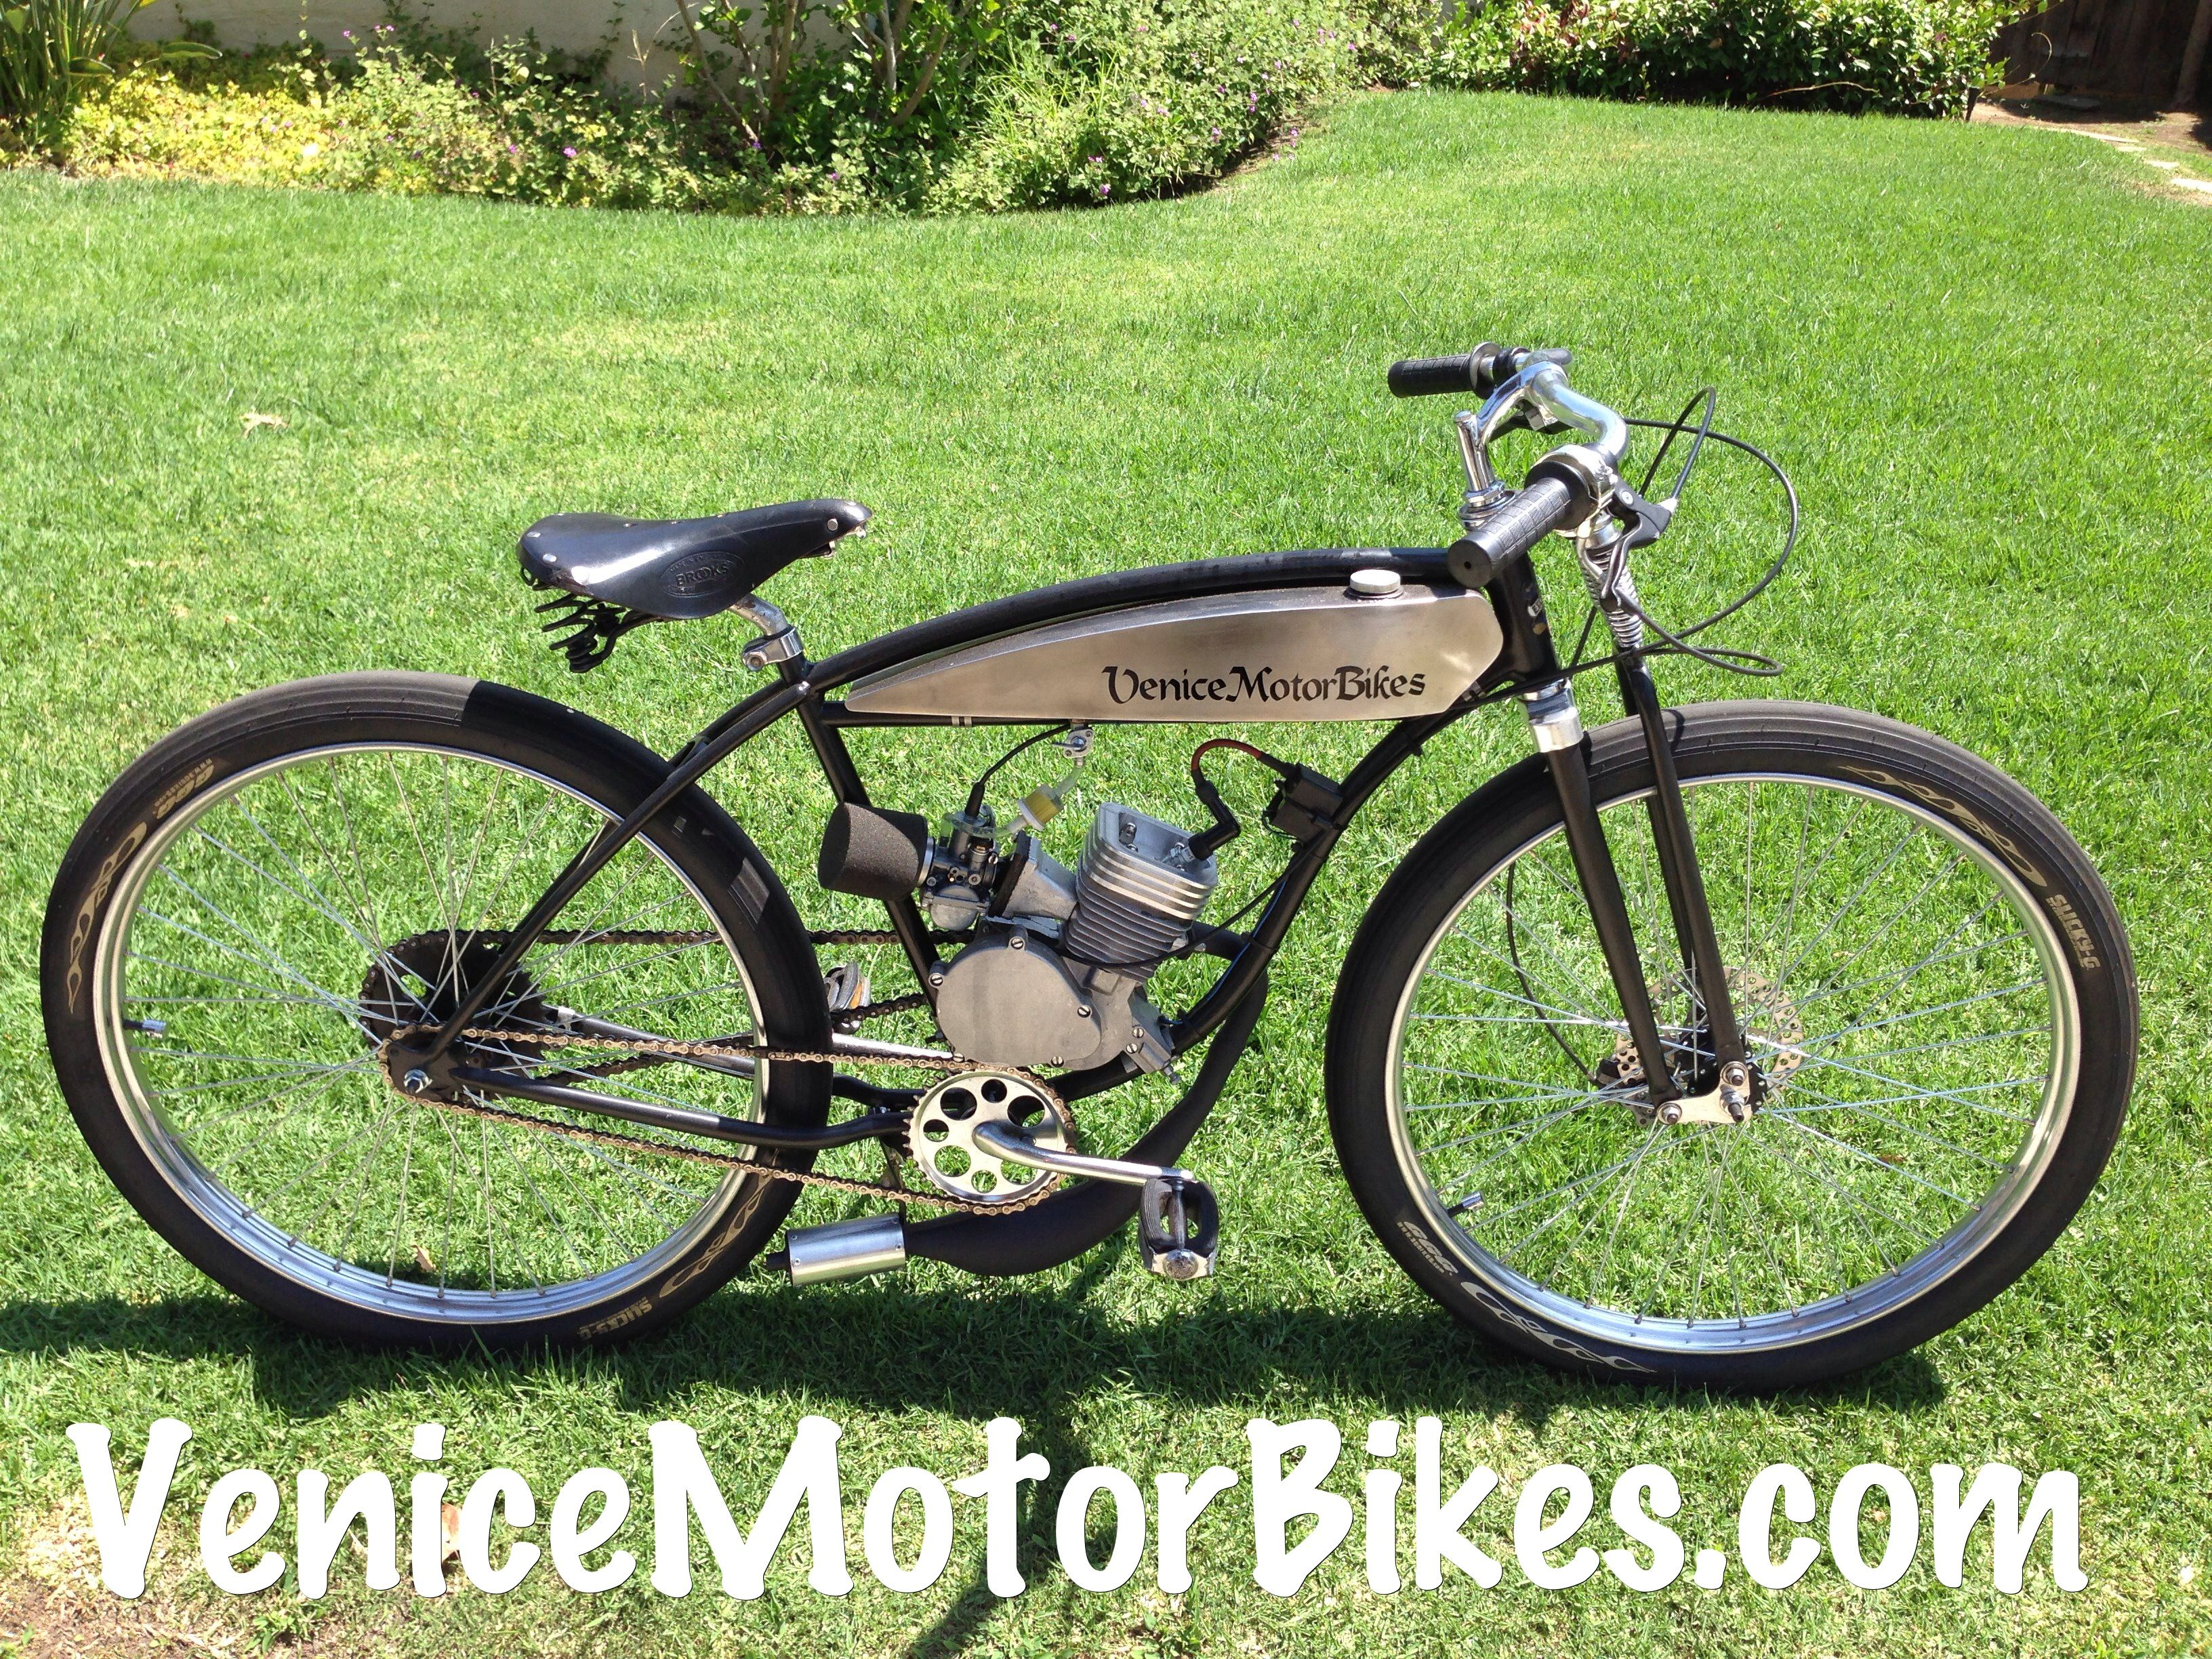 1950 Schwinn Motorized Bicycle Piston Bike Motored Moped